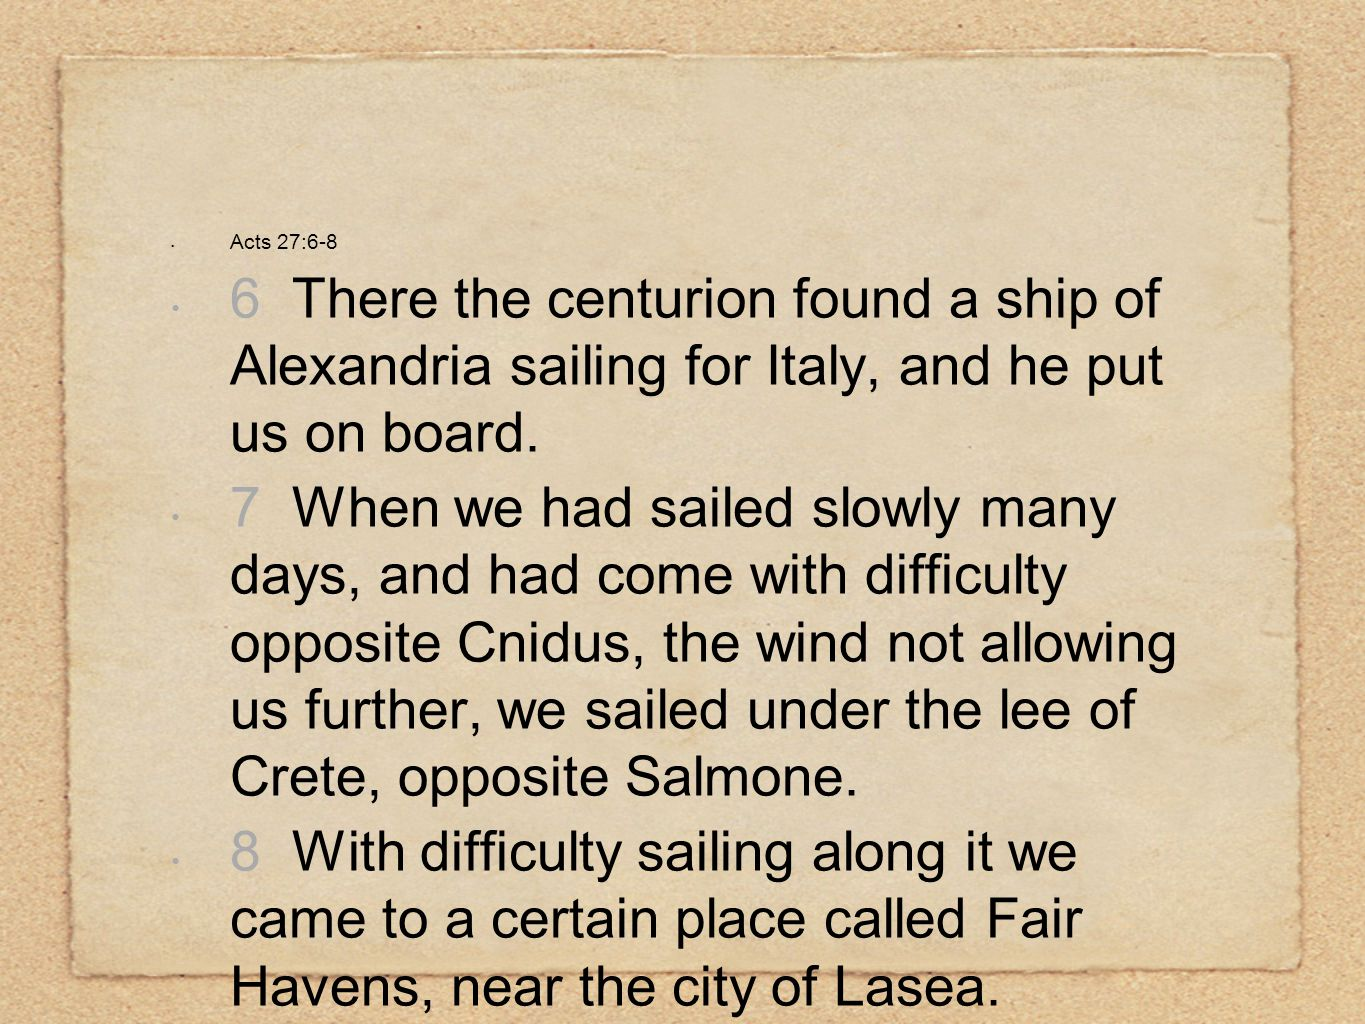 Acts 27:6-8 6 There the centurion found a ship of Alexandria sailing for Italy, and he put us on board. 7 When we had sailed slowly many days, and had